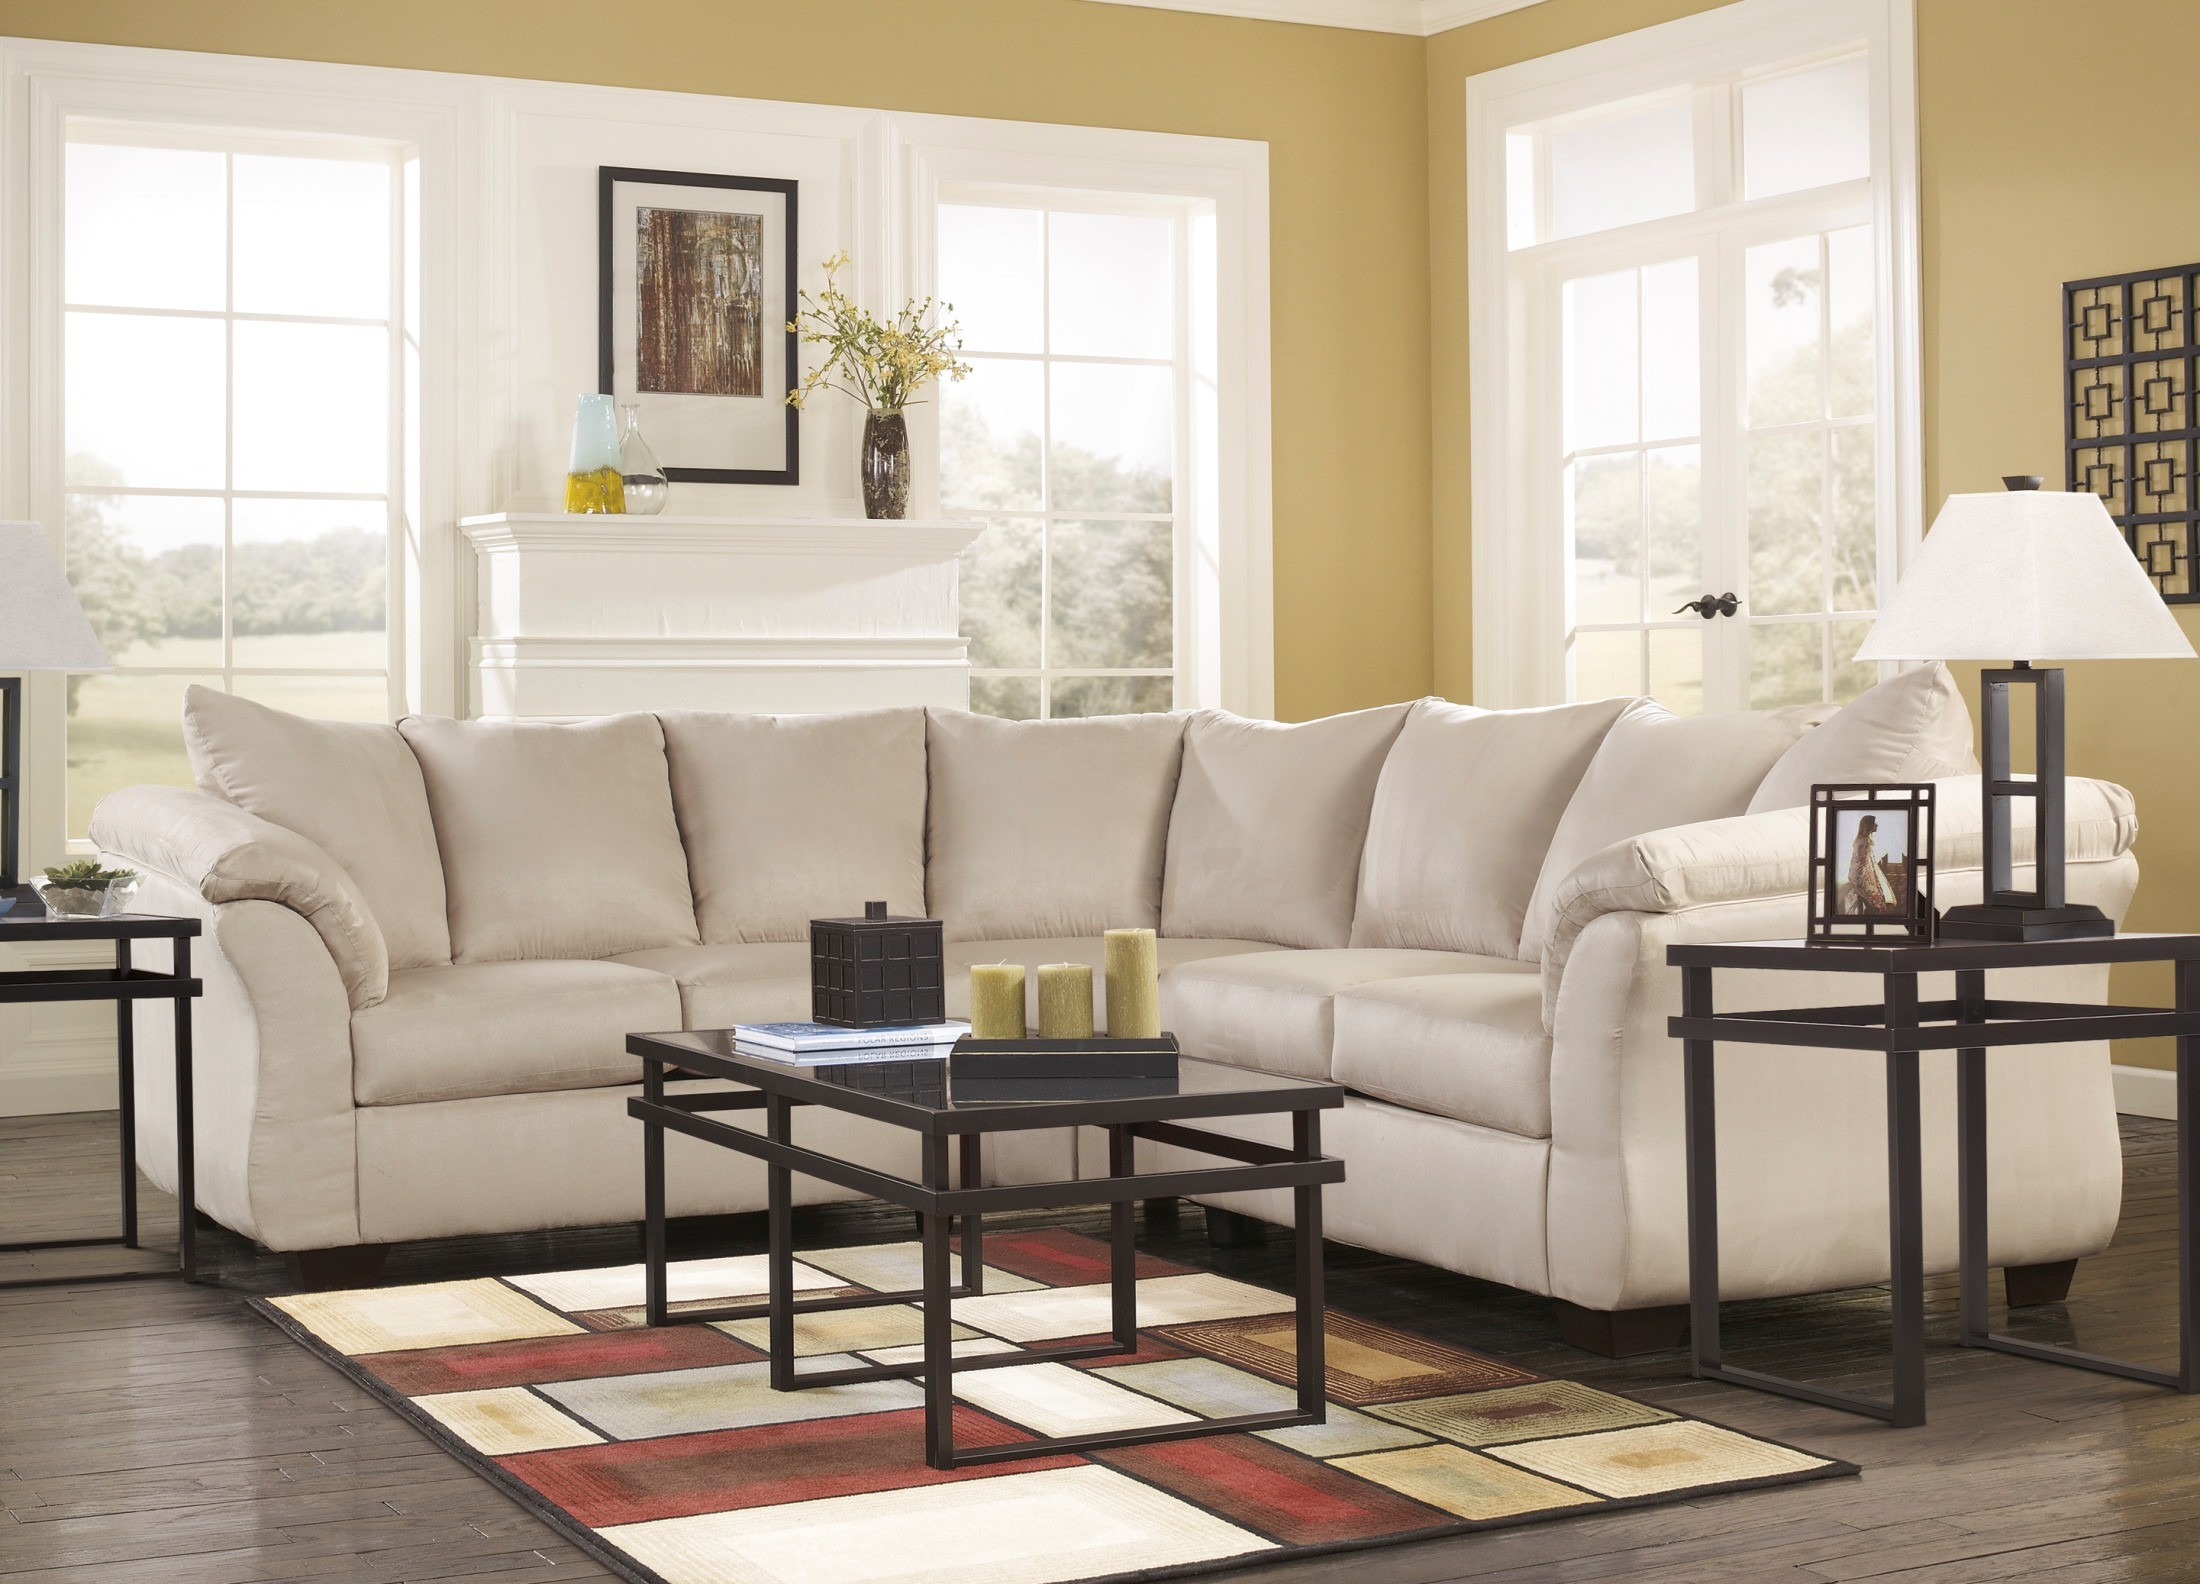 Darcy Stone Sectional From Ashley 75000 55 56 Coleman Furniture